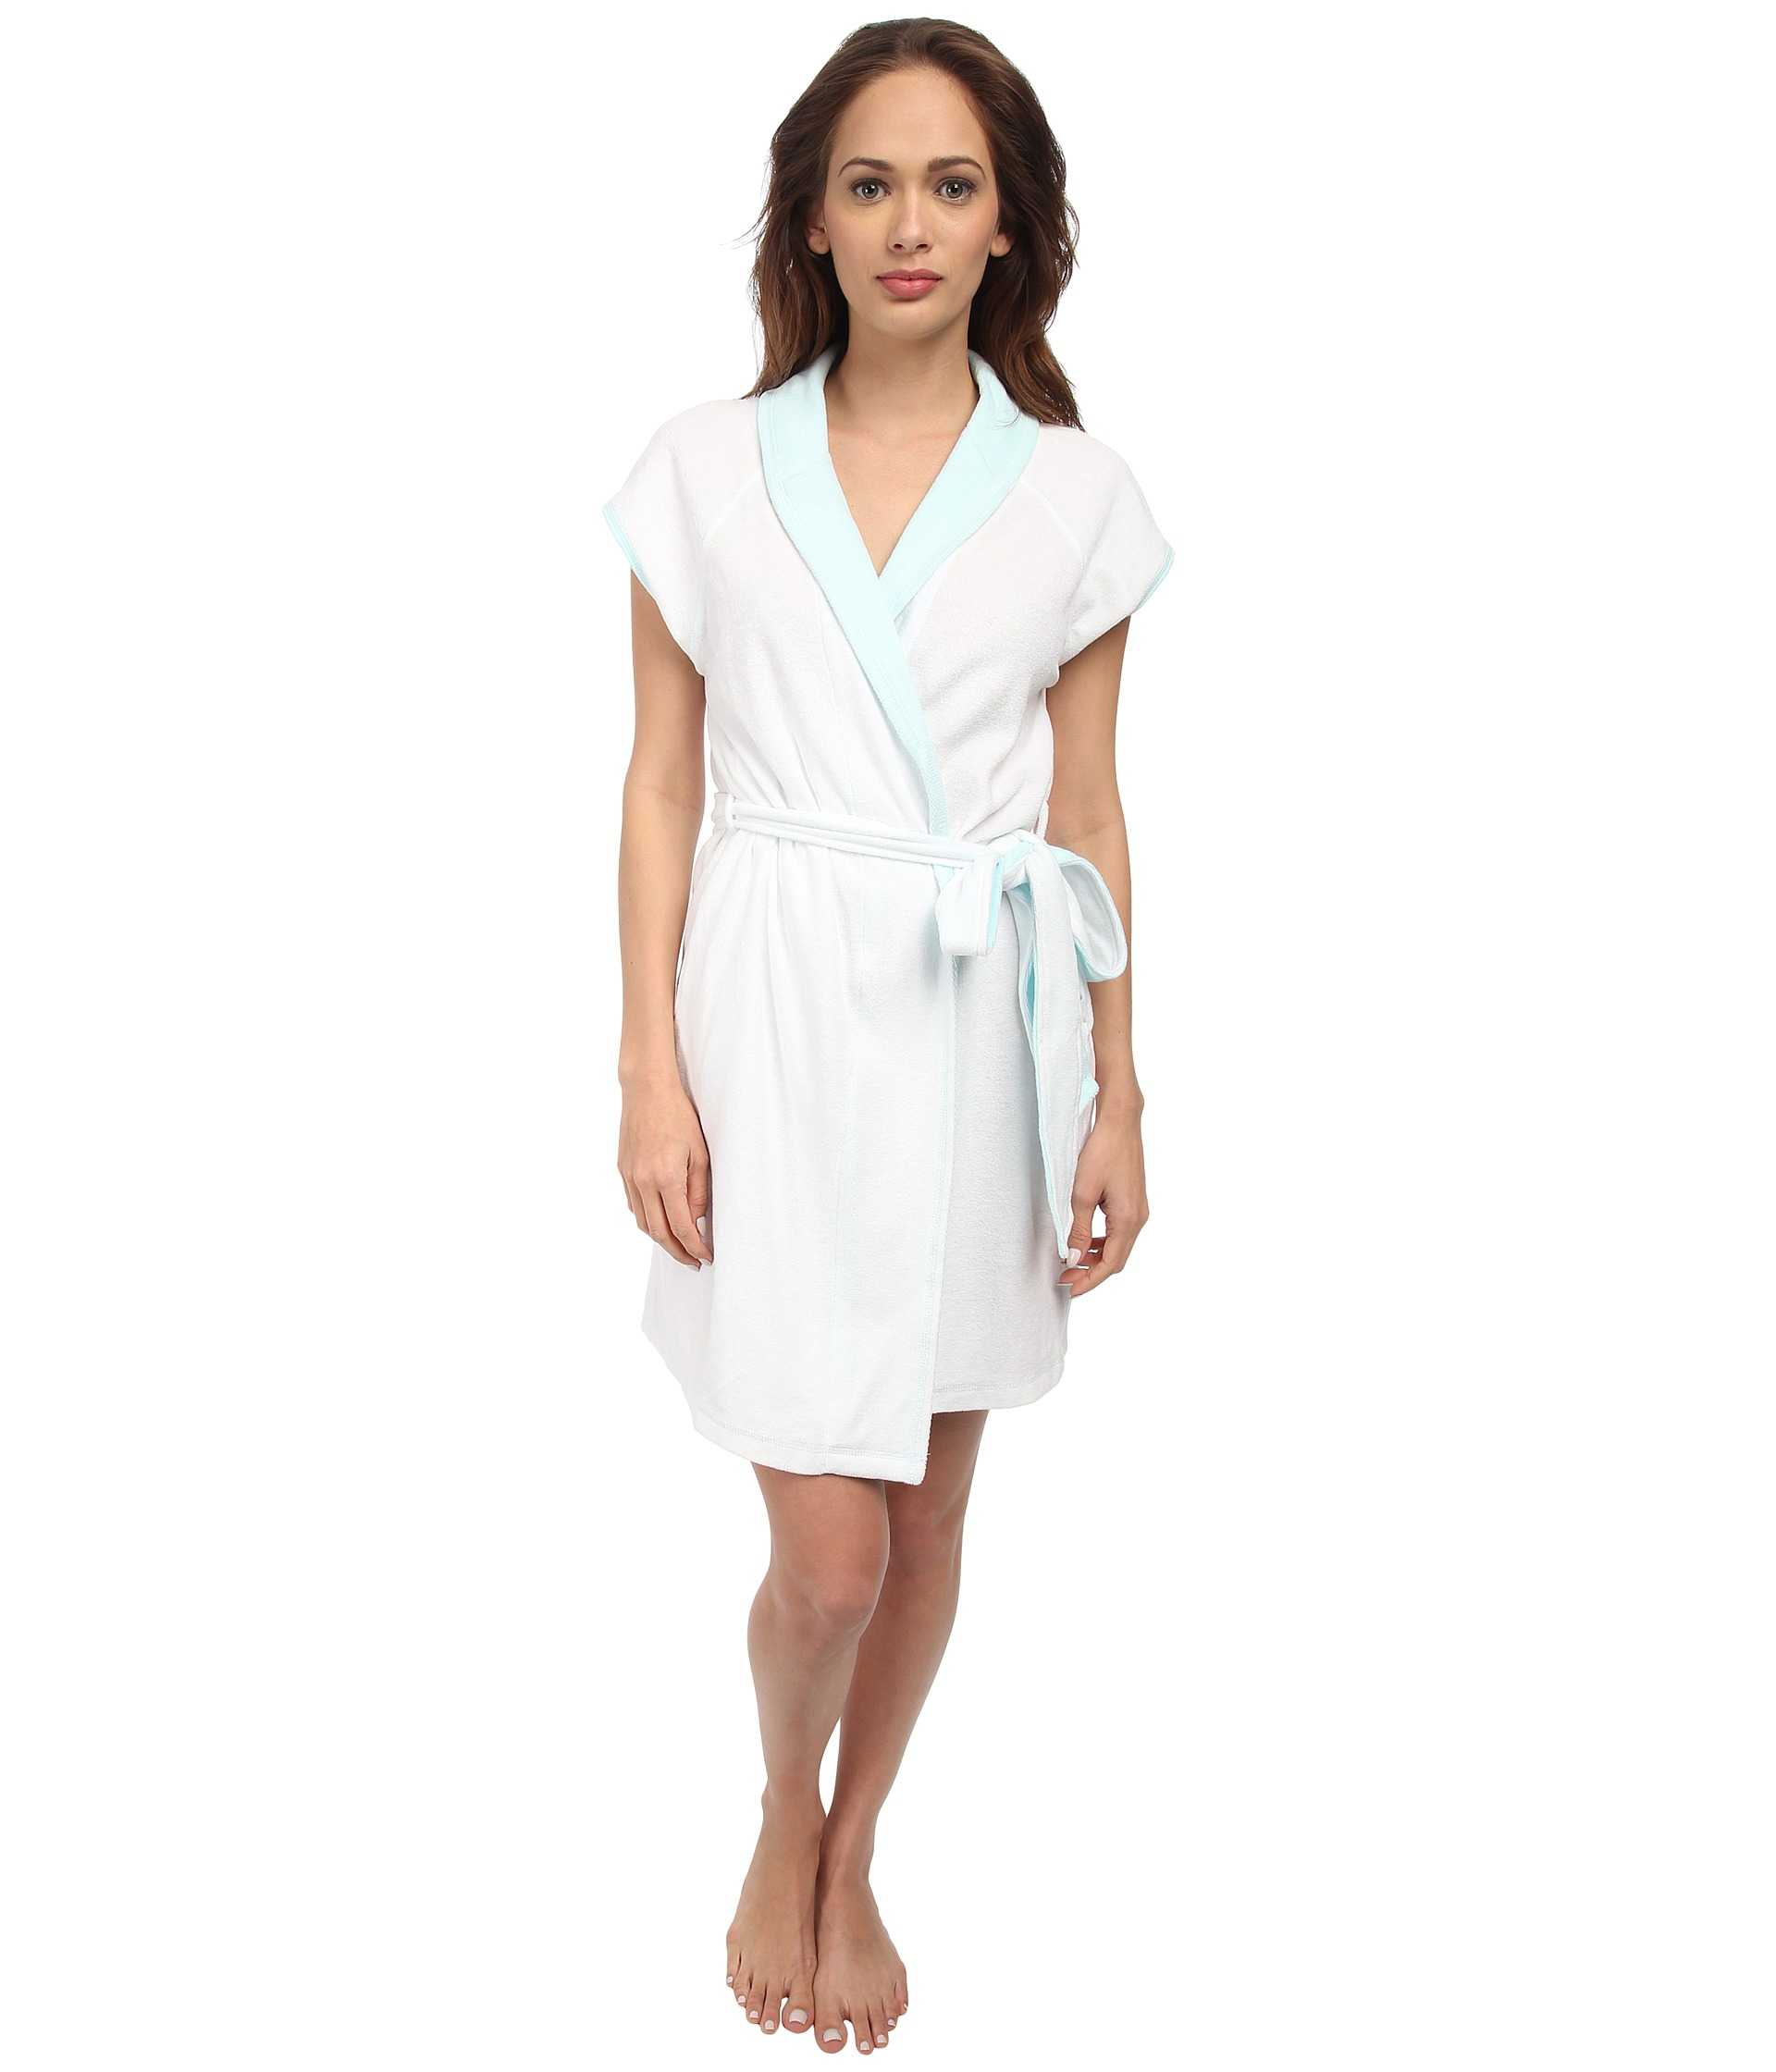 Lyst - Betsey Johnson Bridal Baby Terry Wifey Robe 734719 in White 94c46f444